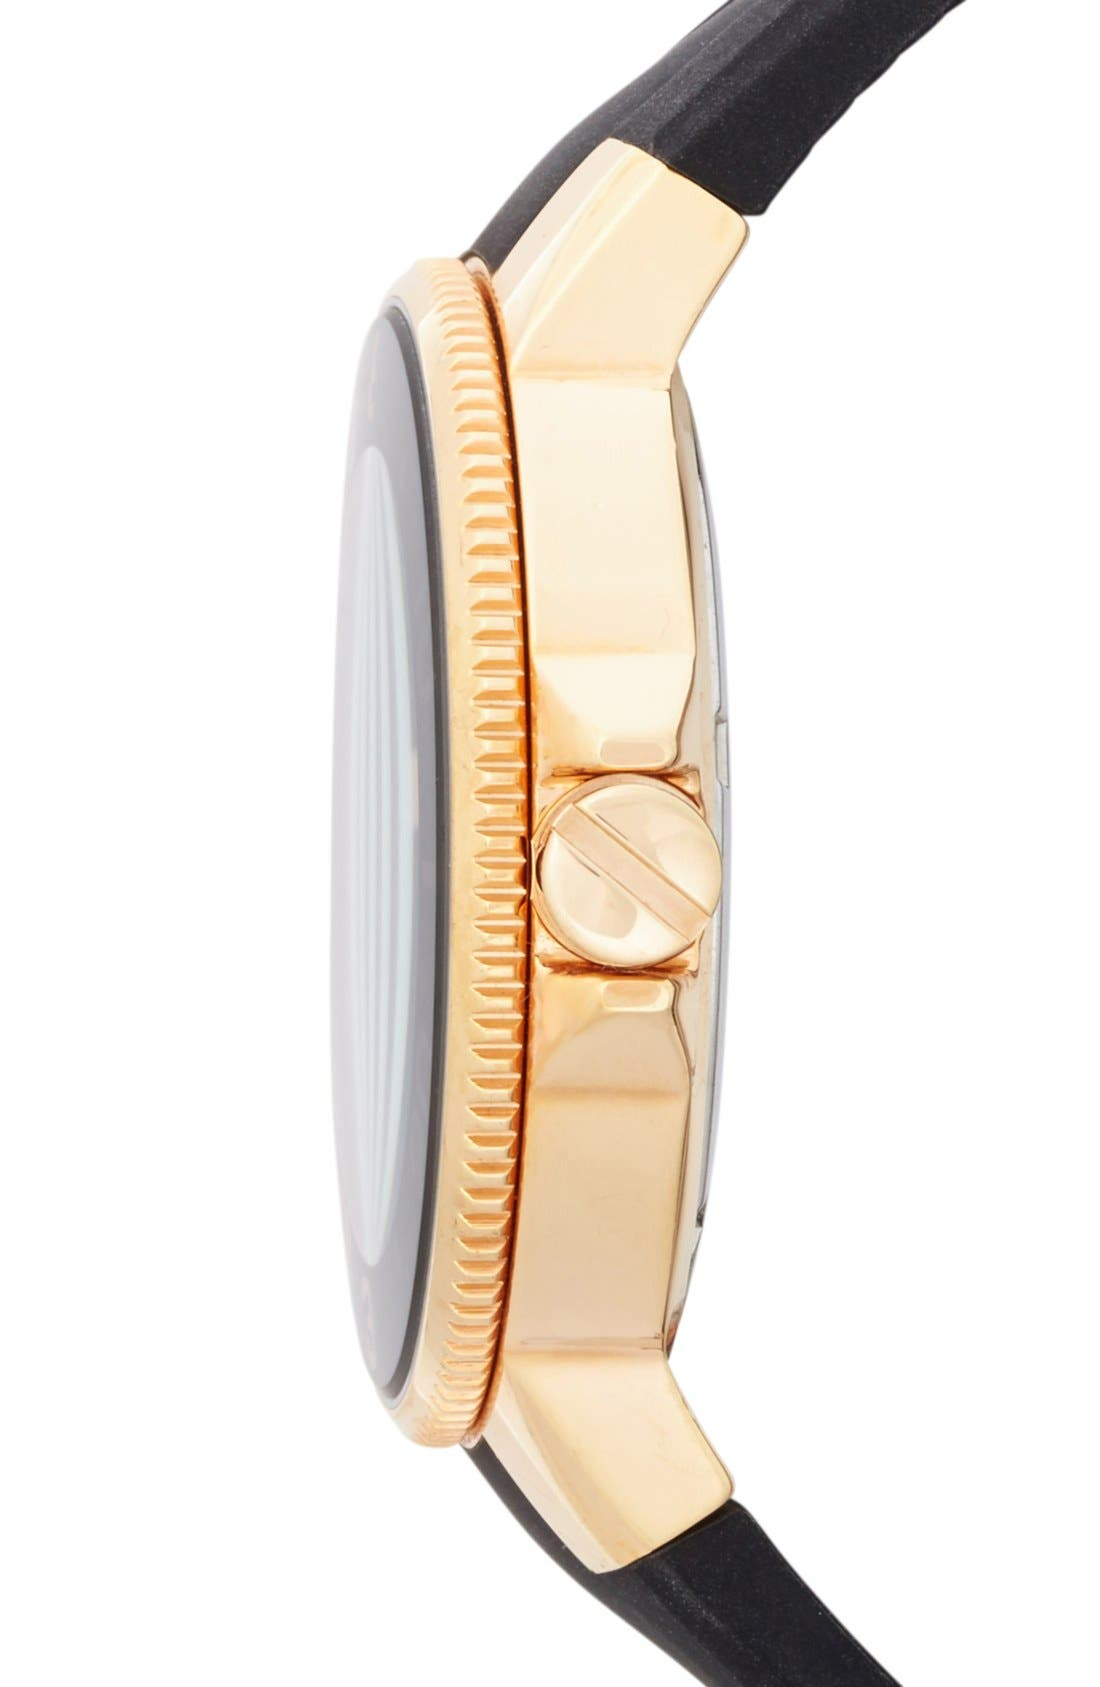 VINCE CAMUTO, Silicone Strap Watch, 38mm, Alternate thumbnail 2, color, 001